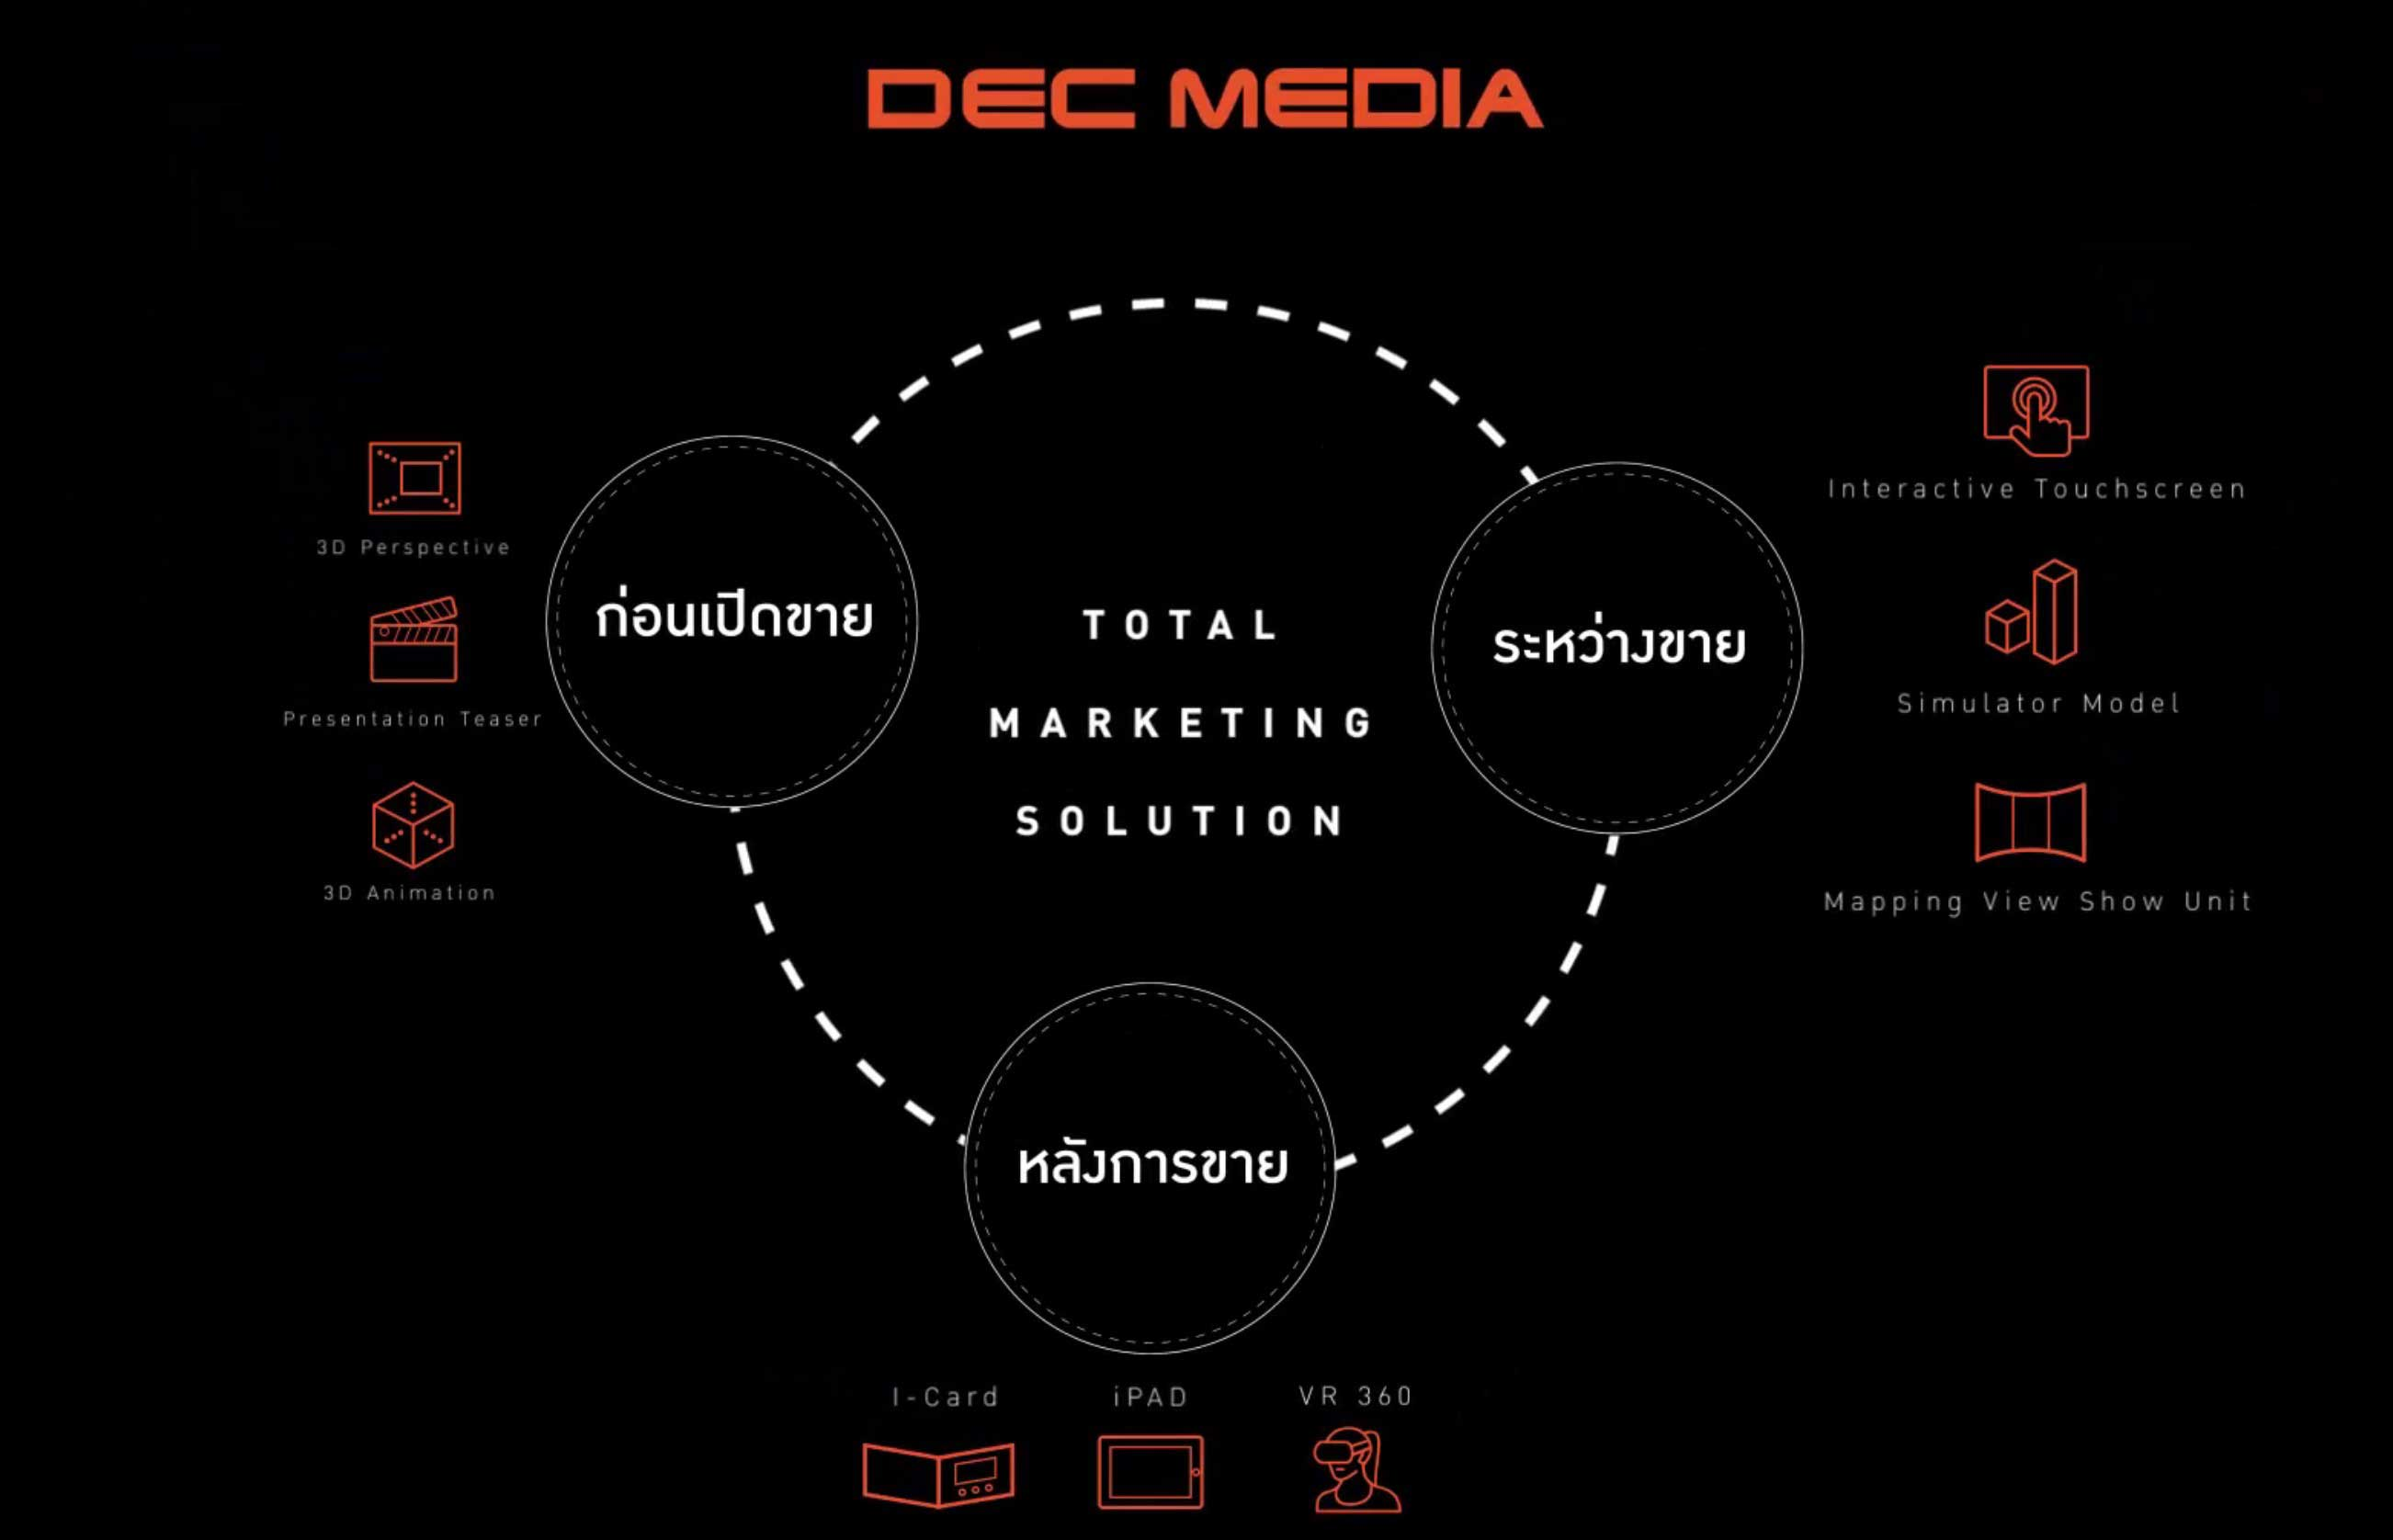 DECtotal-marketingsolution